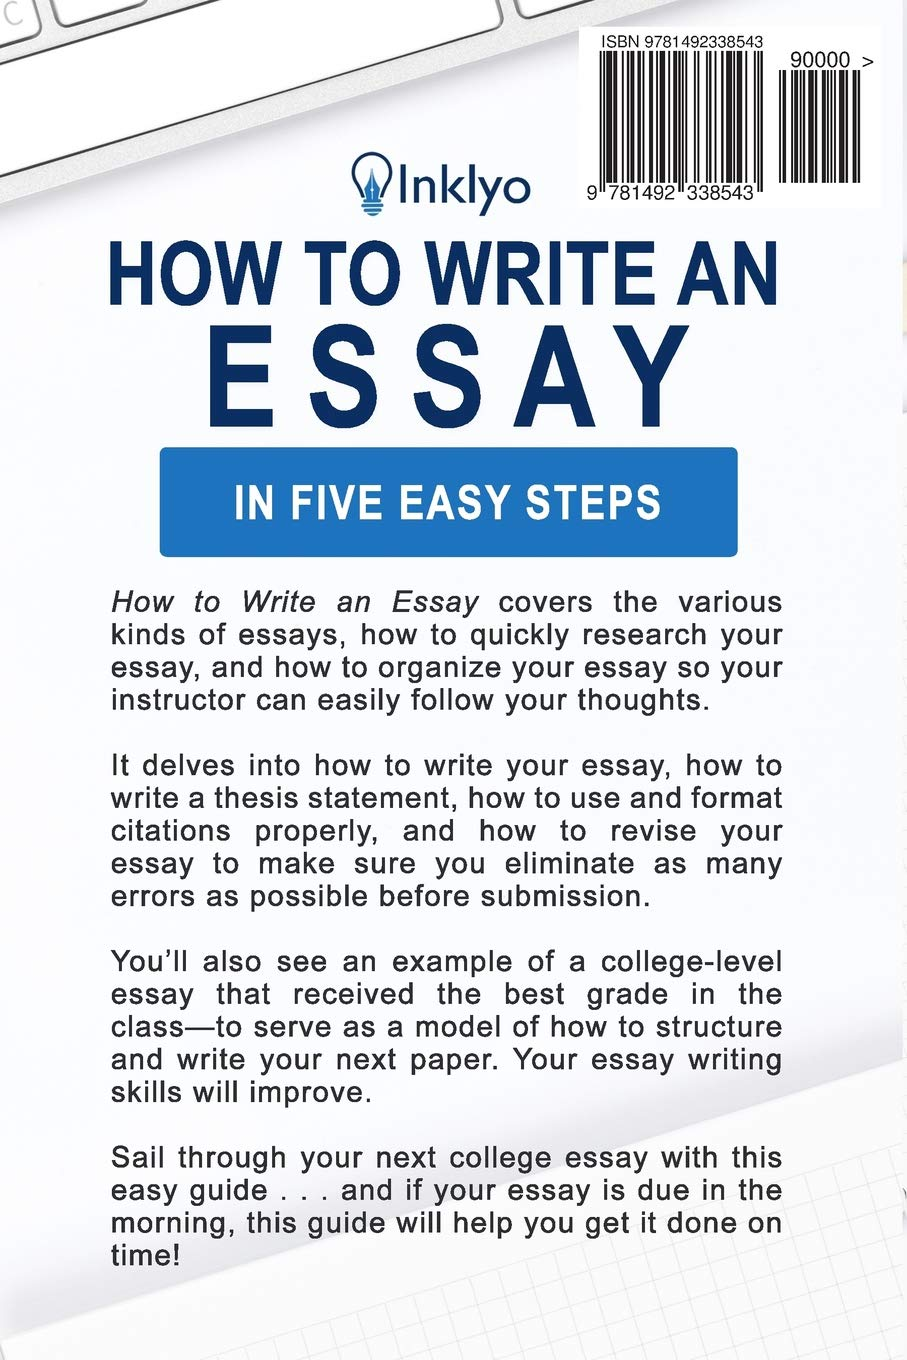 002 How To Write An Essay Example Shocking About Yourself Without Using I For College English Introduction Full